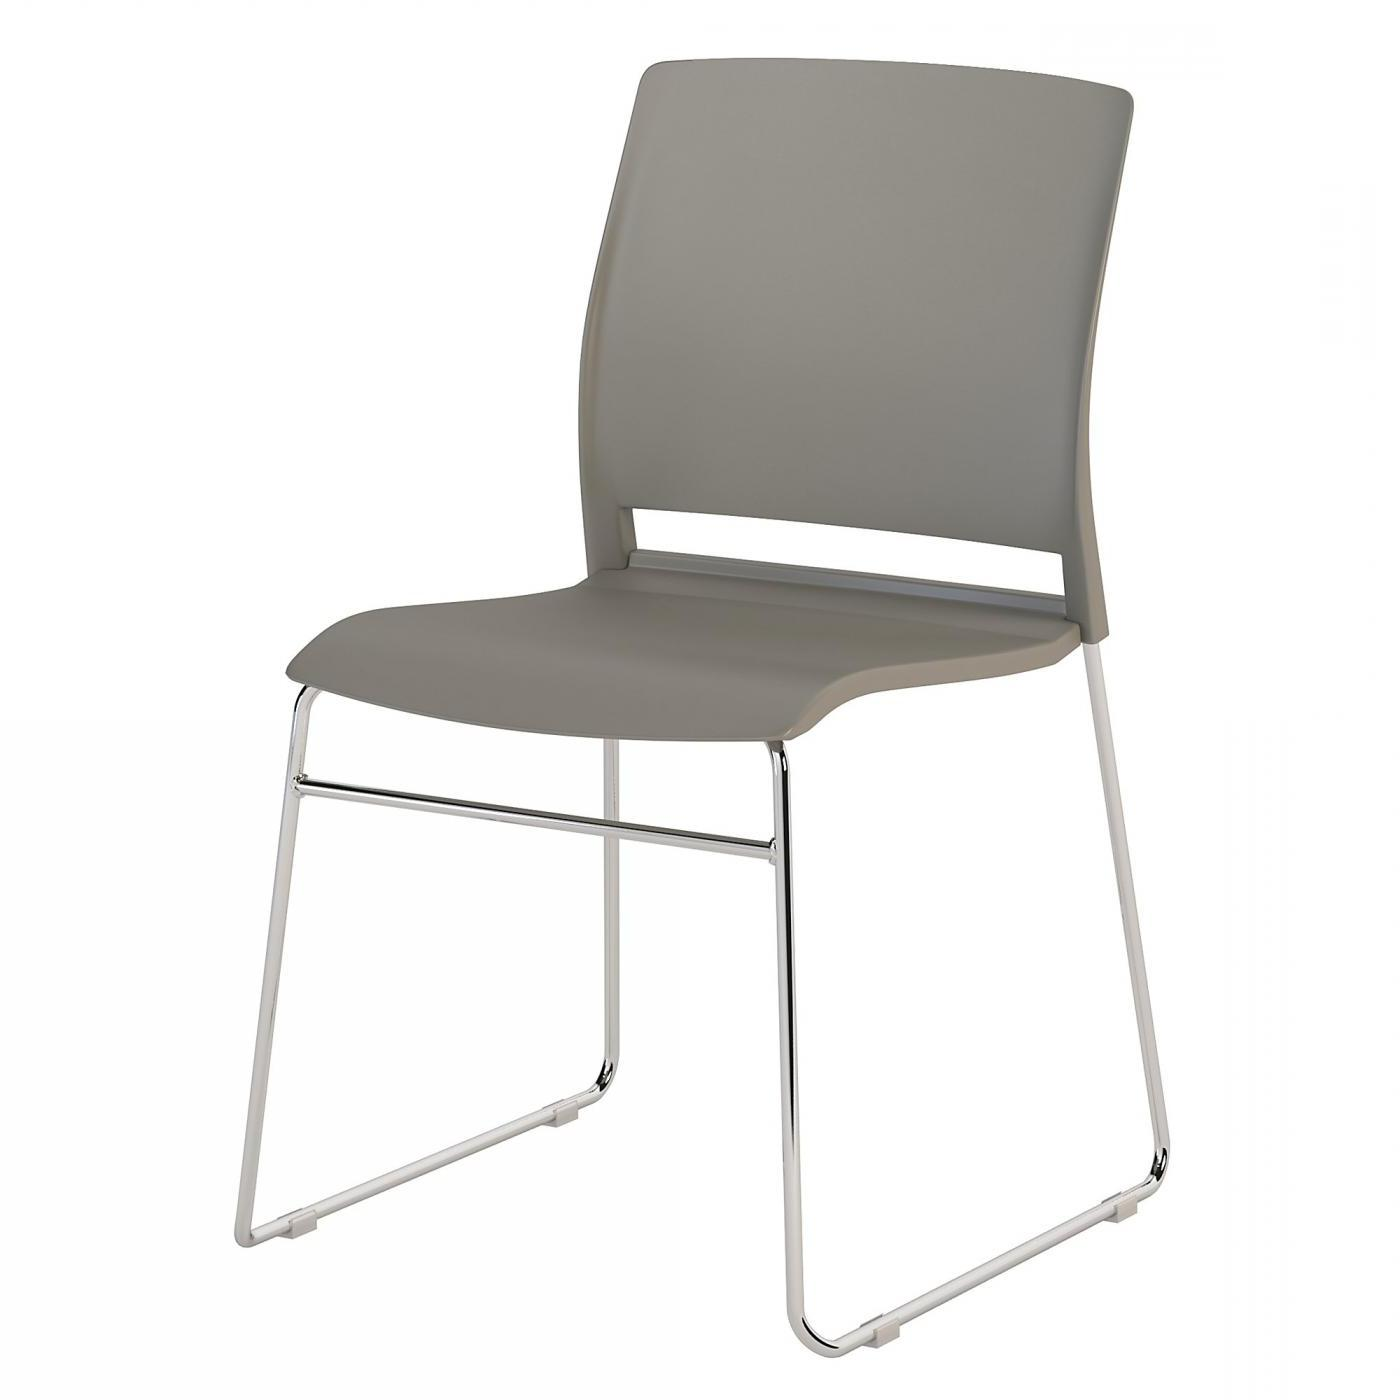 <font color=#c60><b>BUSH BUSINESS FURNITURE CORPORATE STACKABLE CHAIRS SET OF 2. FREE SHIPPING</font></b> </font></b>